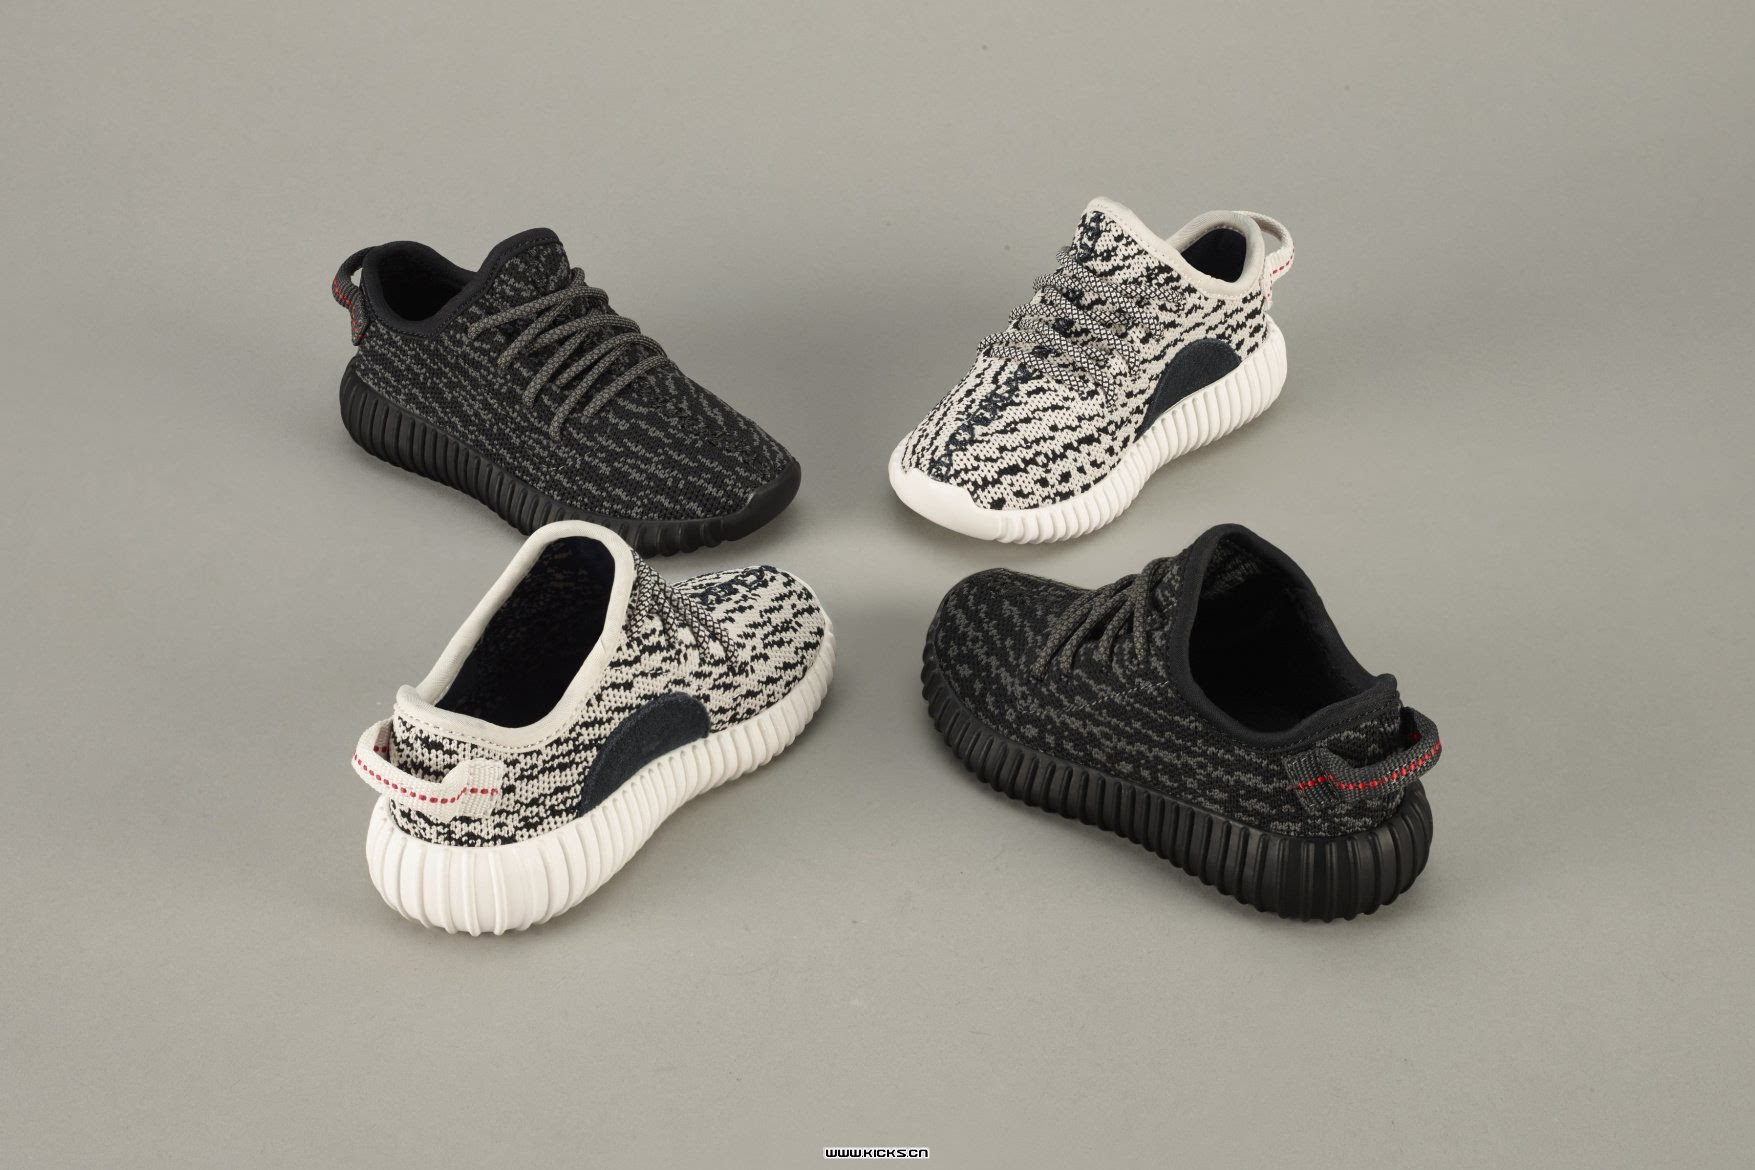 adidas originals by kanye west 最新 yeezy boost 350 infant 童鞋设计